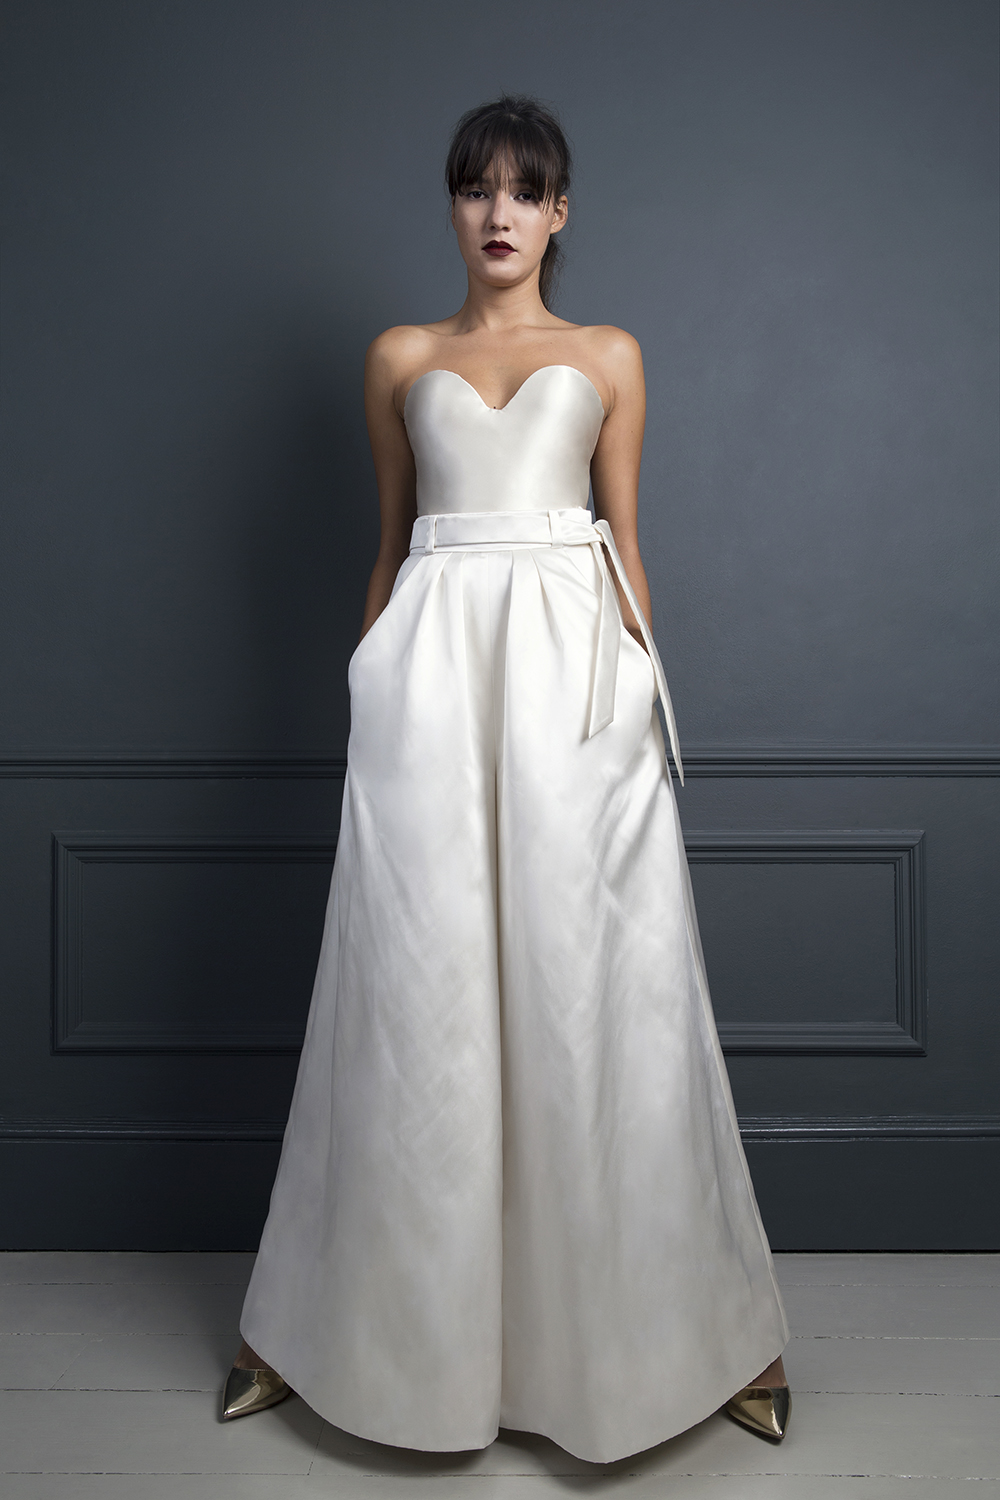 MARLENE TROUSERS & LORETTA SATIN CORSET | WEDDING SEPARATES BY HALFPENNY LONDON